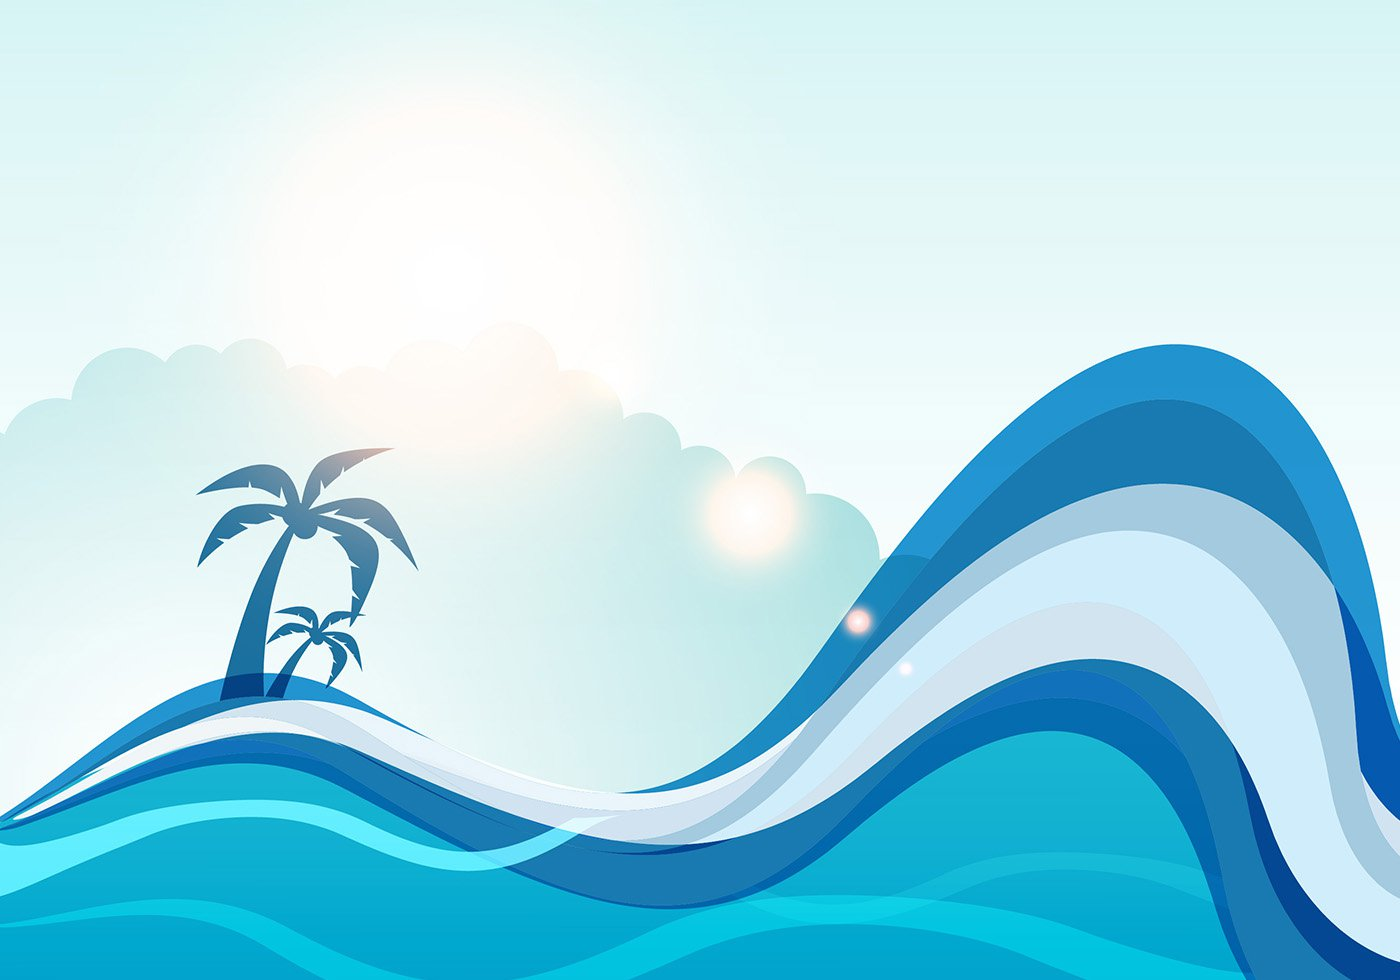 WAVES VECTOR - ClipArt Best